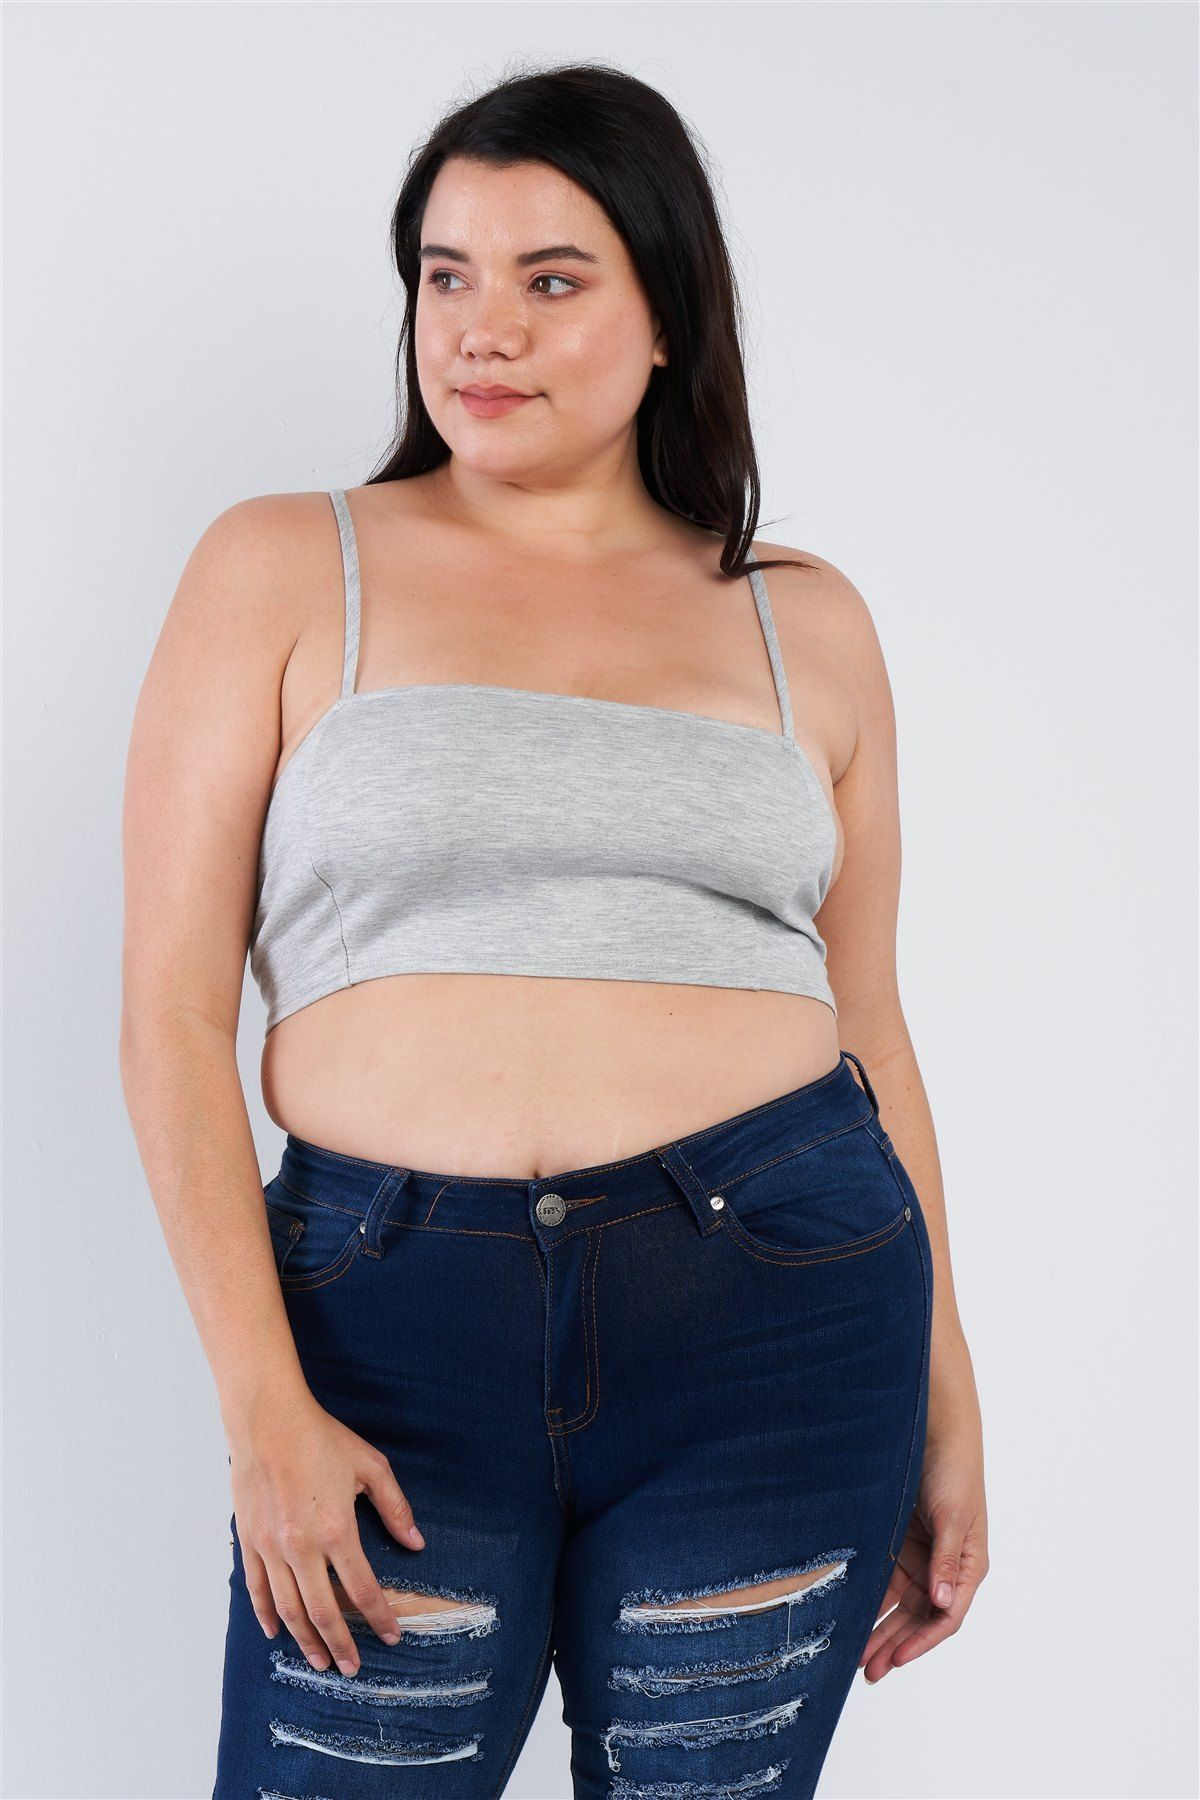 Made In U.S.A 1XL.2XL.3XL open stripe back, crop length, unlined, sports bra, casual, square neck, athletic, lounge wear, solid, very stretchy, 44% Polyester 44% Nylon 4% Spandex Grey TSH Plus Size Open Stripe Back Cami Strap Athletic Lounge Bra split